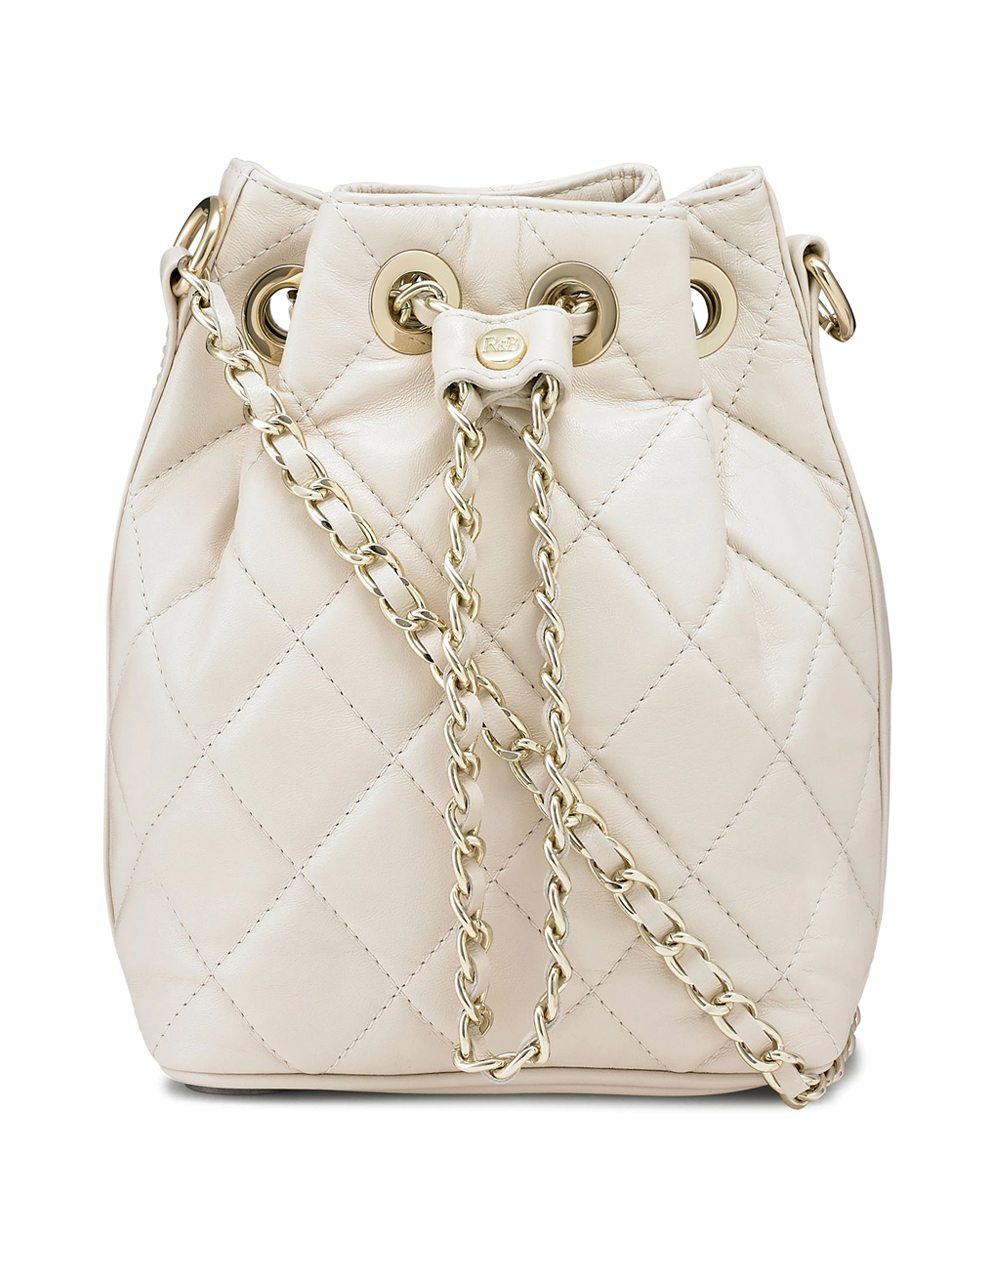 russell & bromley mimi bag